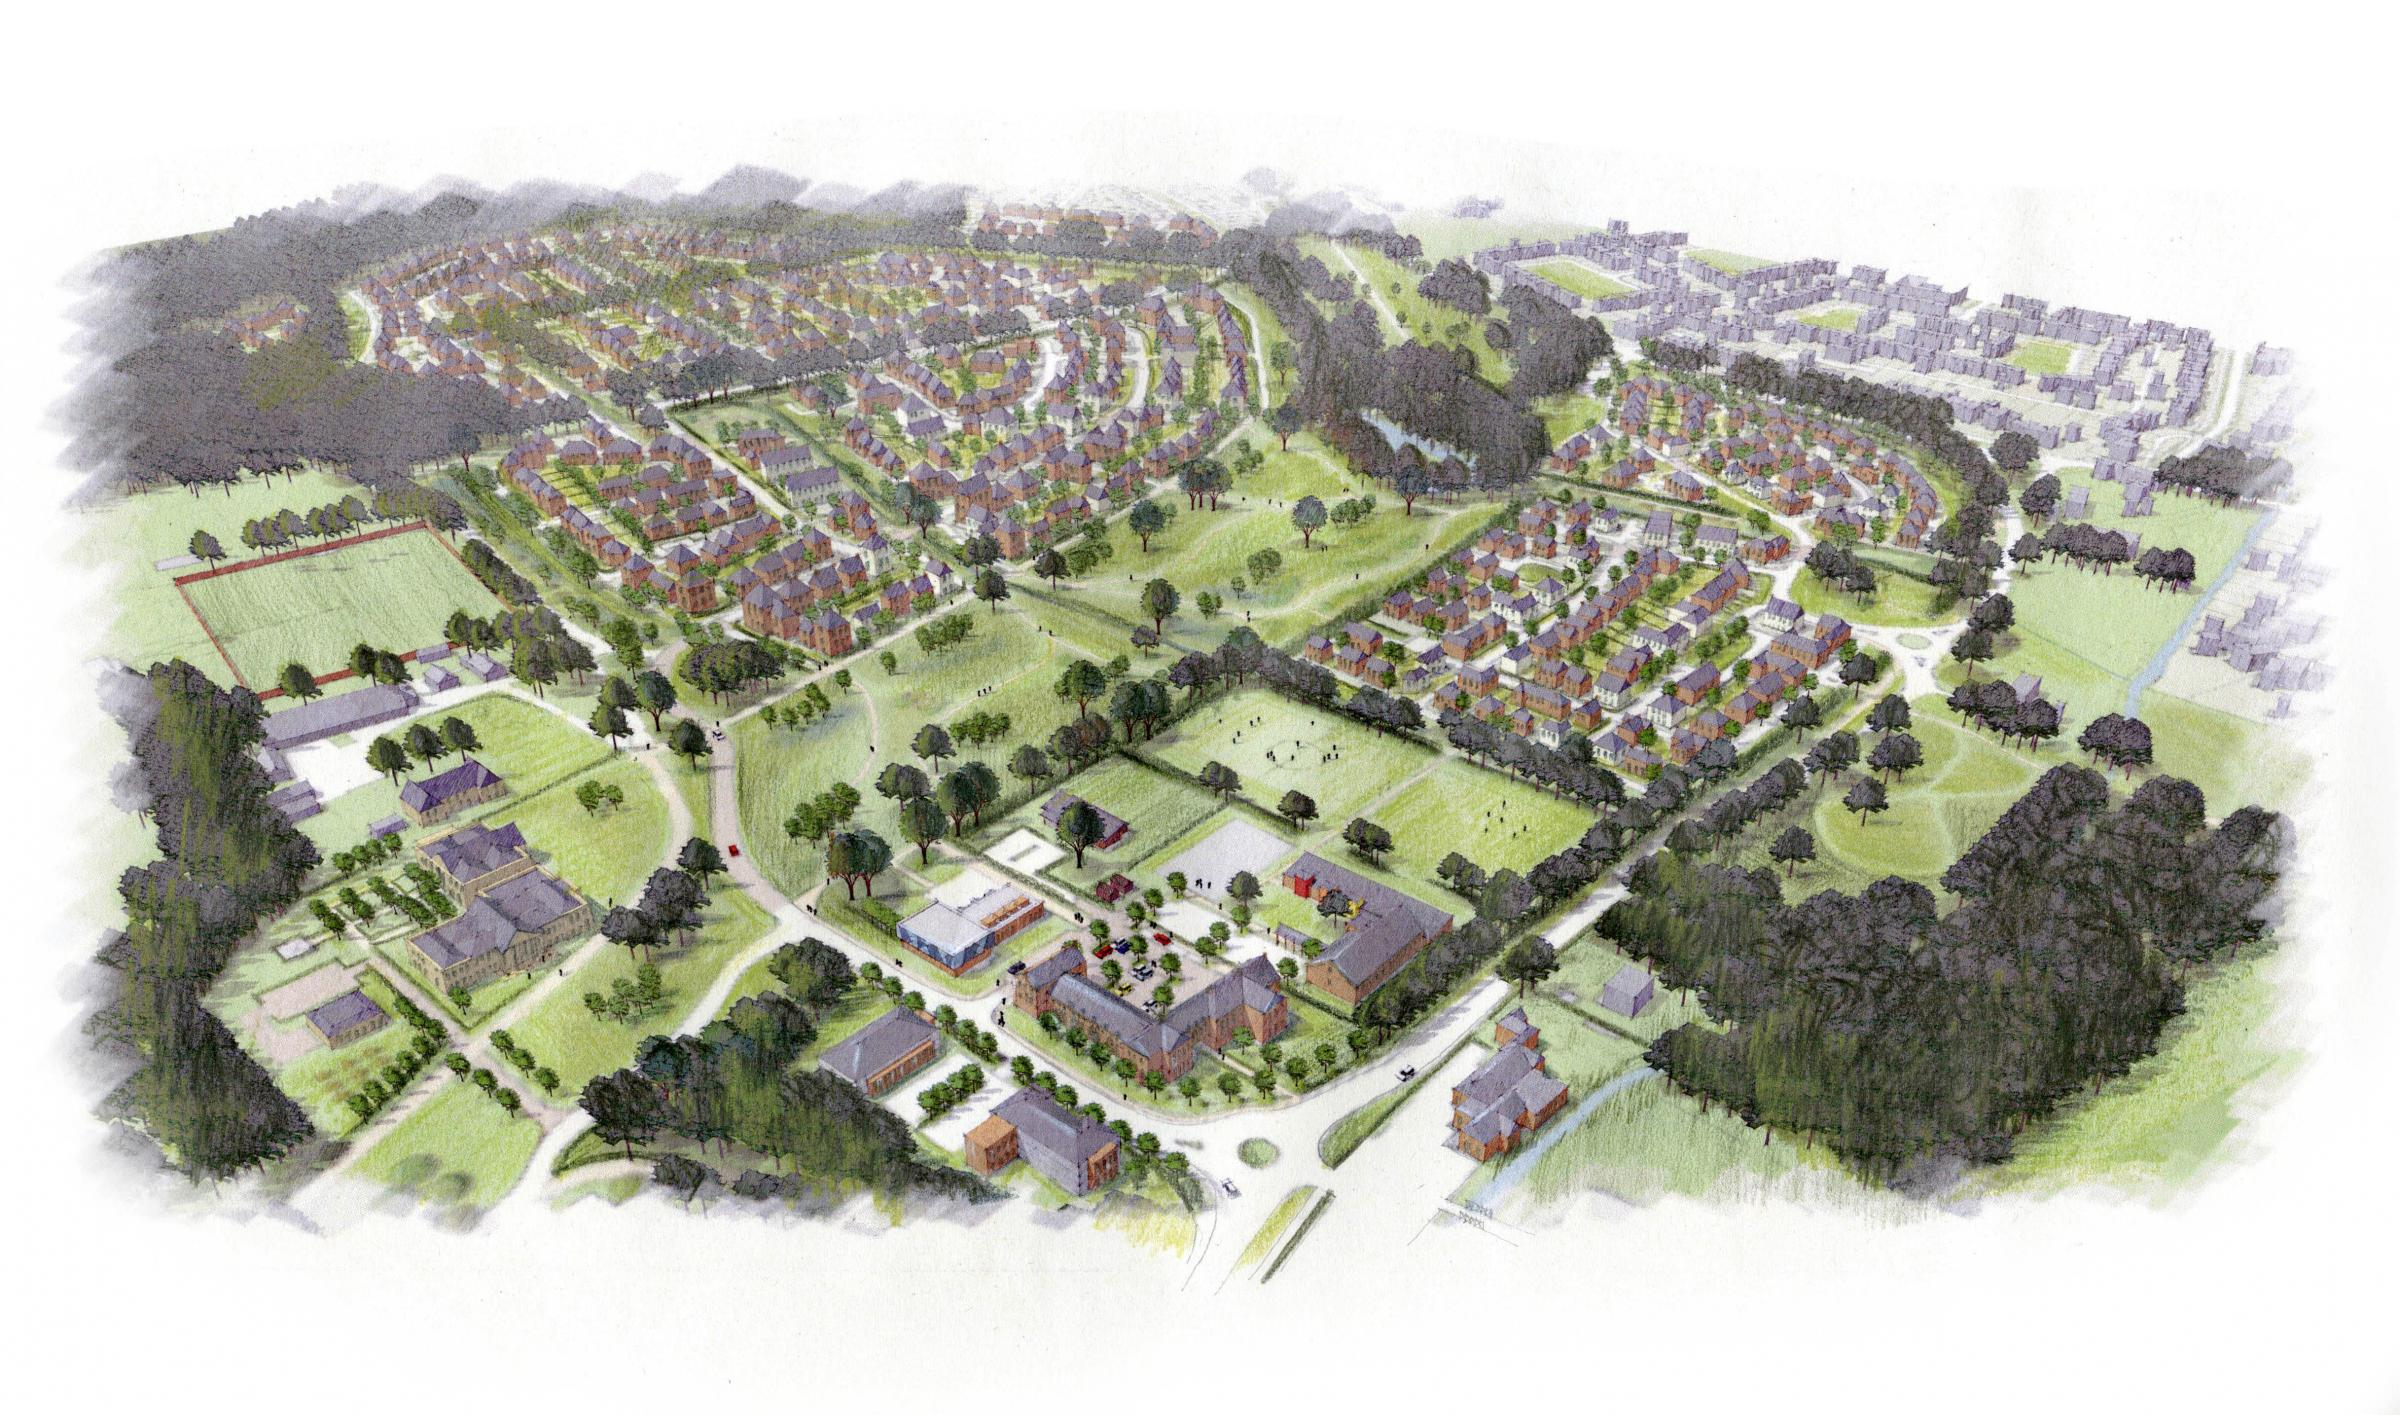 An artist's impression of what North Stoneham Park development in Eastleigh could look like